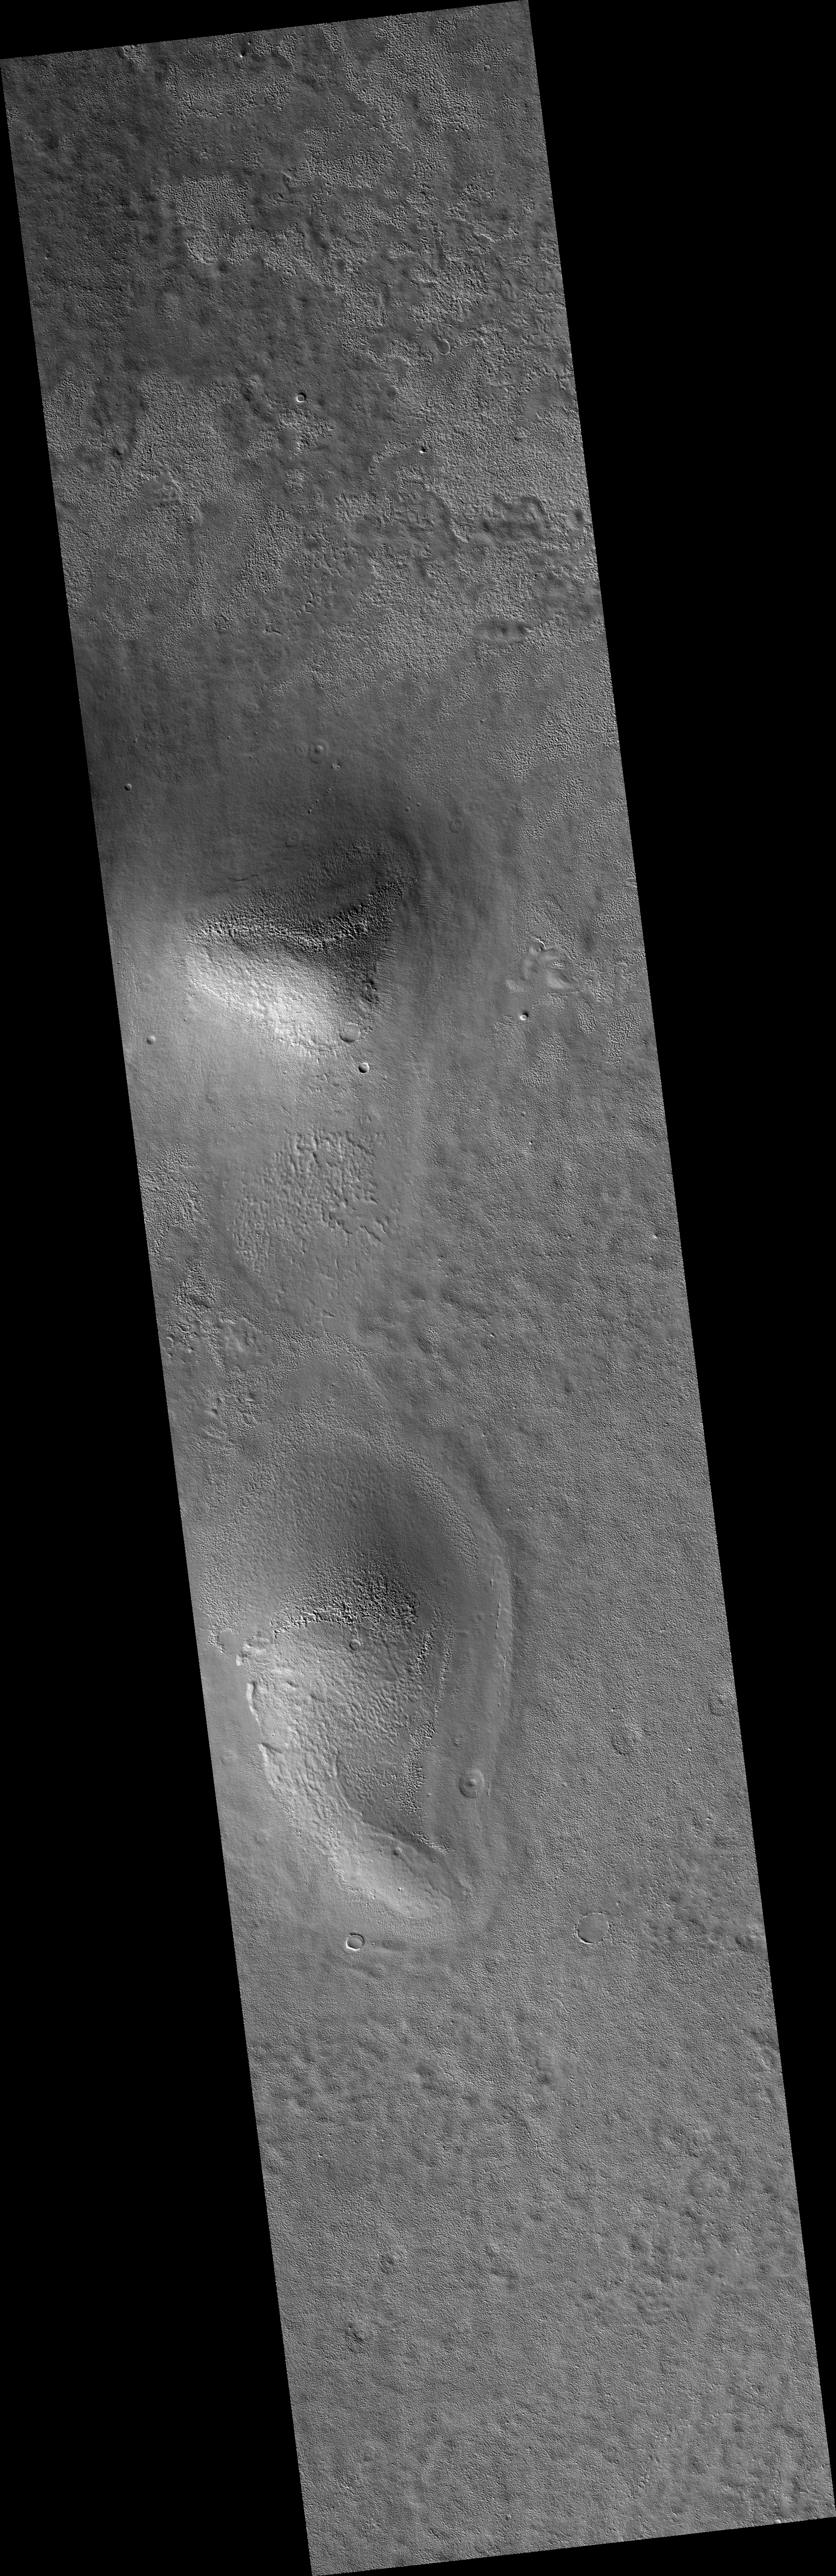 Indications of Ground Ice in Arcadia Planitia